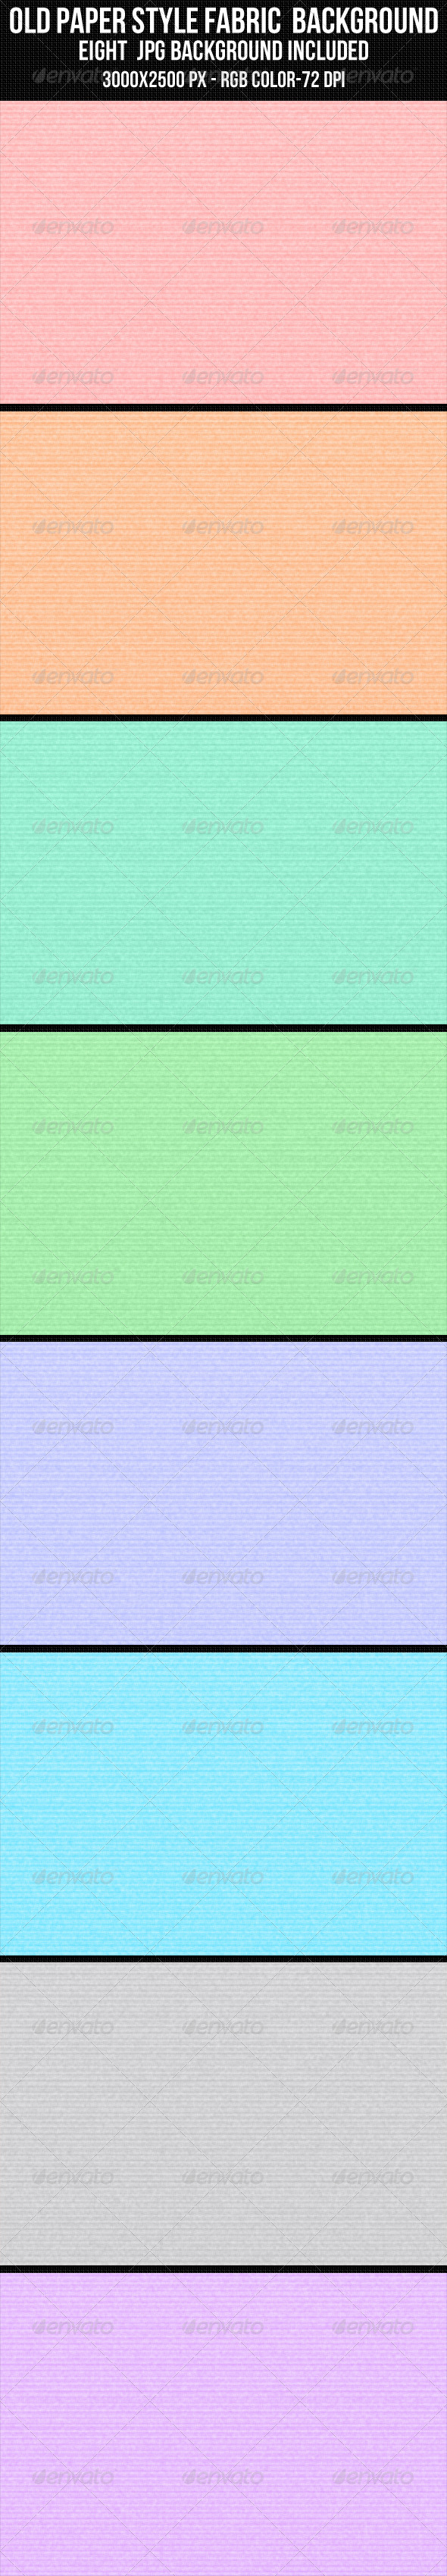 Old Paper Style Fabric Background Set - Patterns Backgrounds